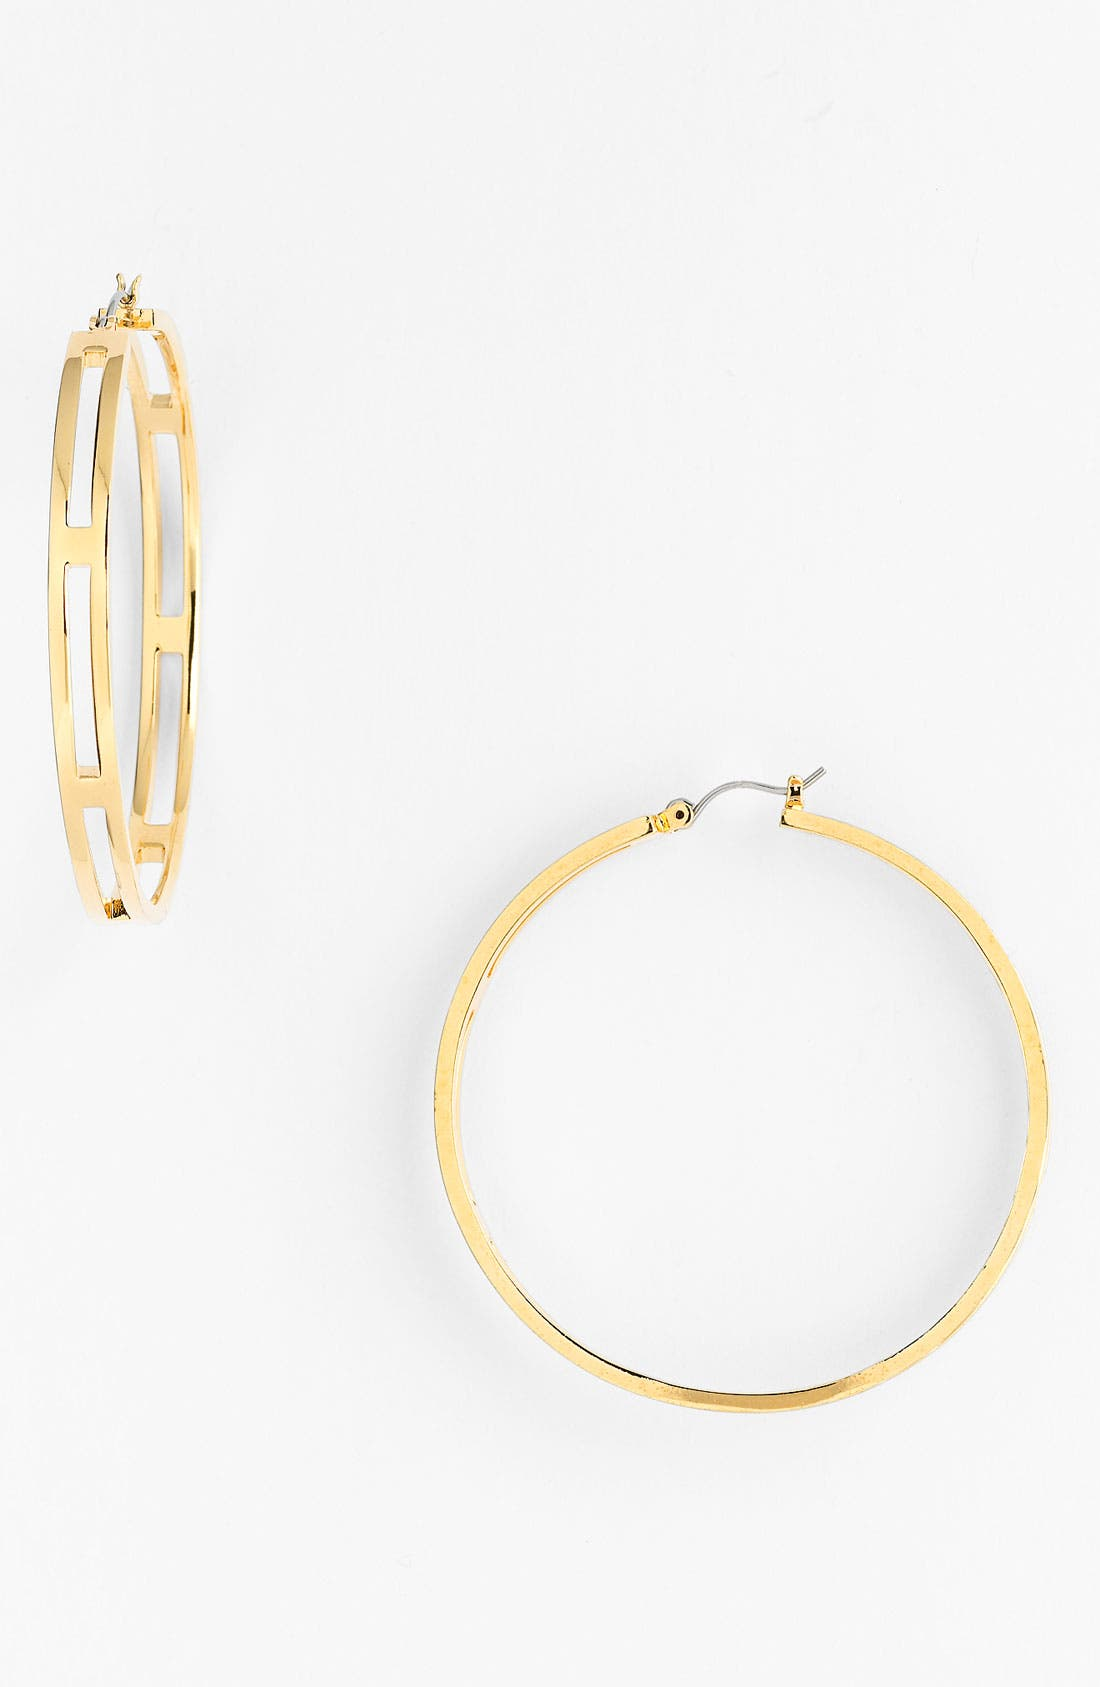 Main Image - Vince Camuto 'Basics' Cutout Hoop Earrings